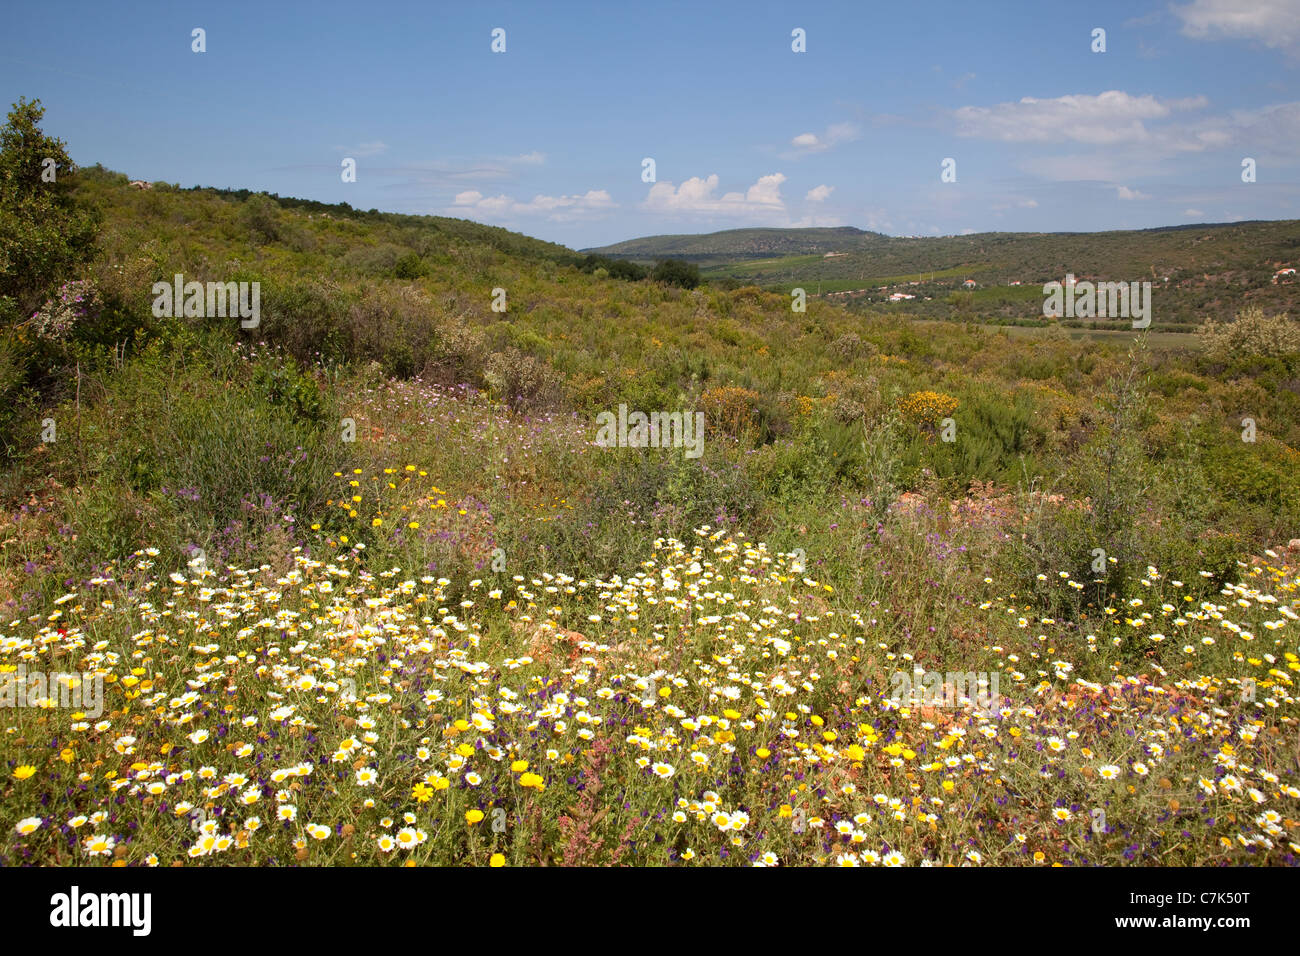 Portugal, Algarve, Near Pademe, Countryside - Stock Image